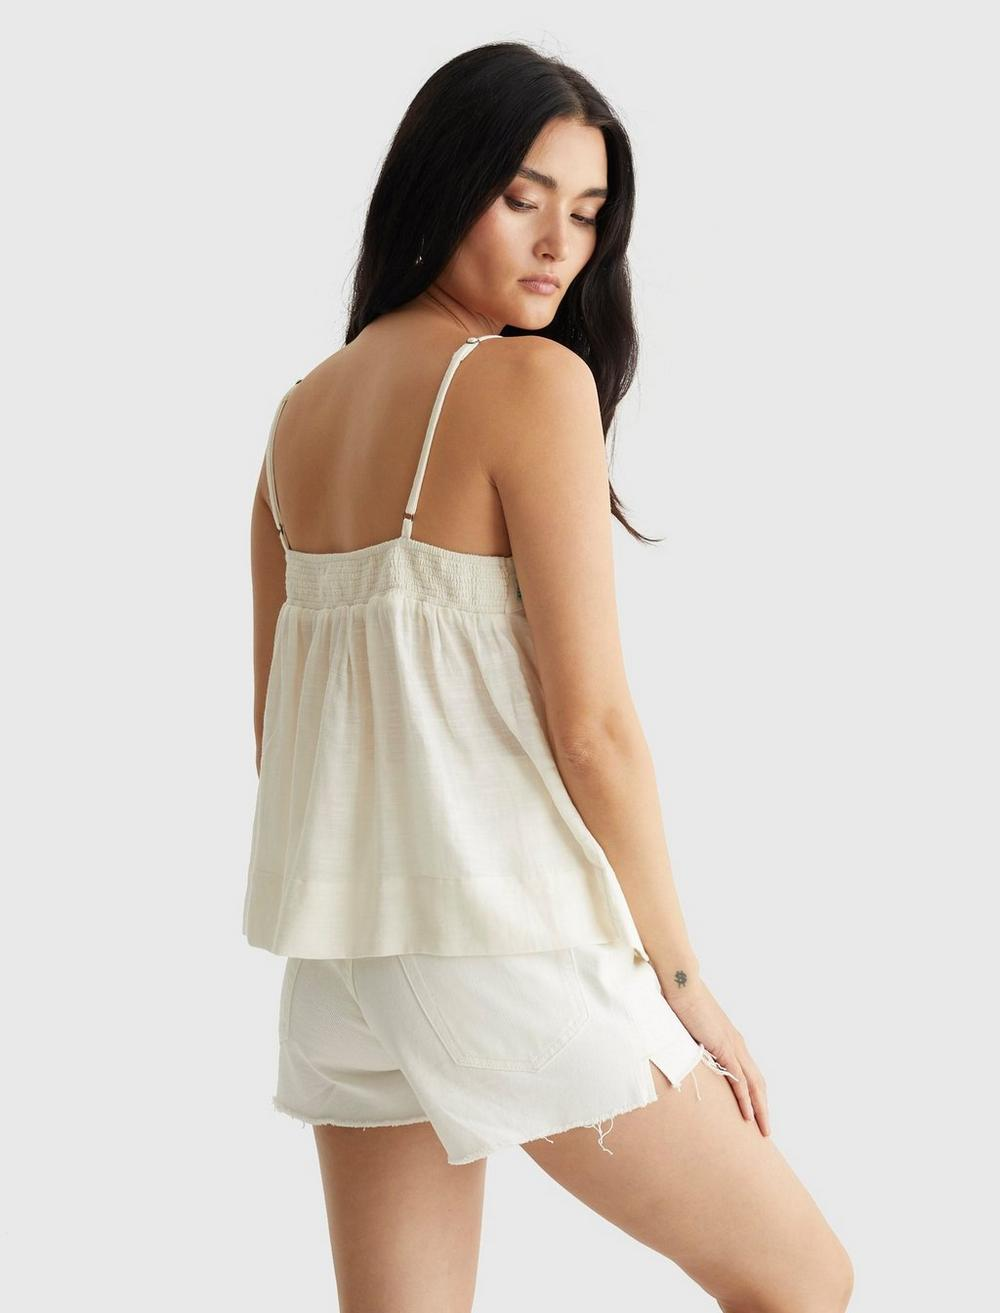 LIMITED EDITION BEADED FLOWY CAMI, image 4